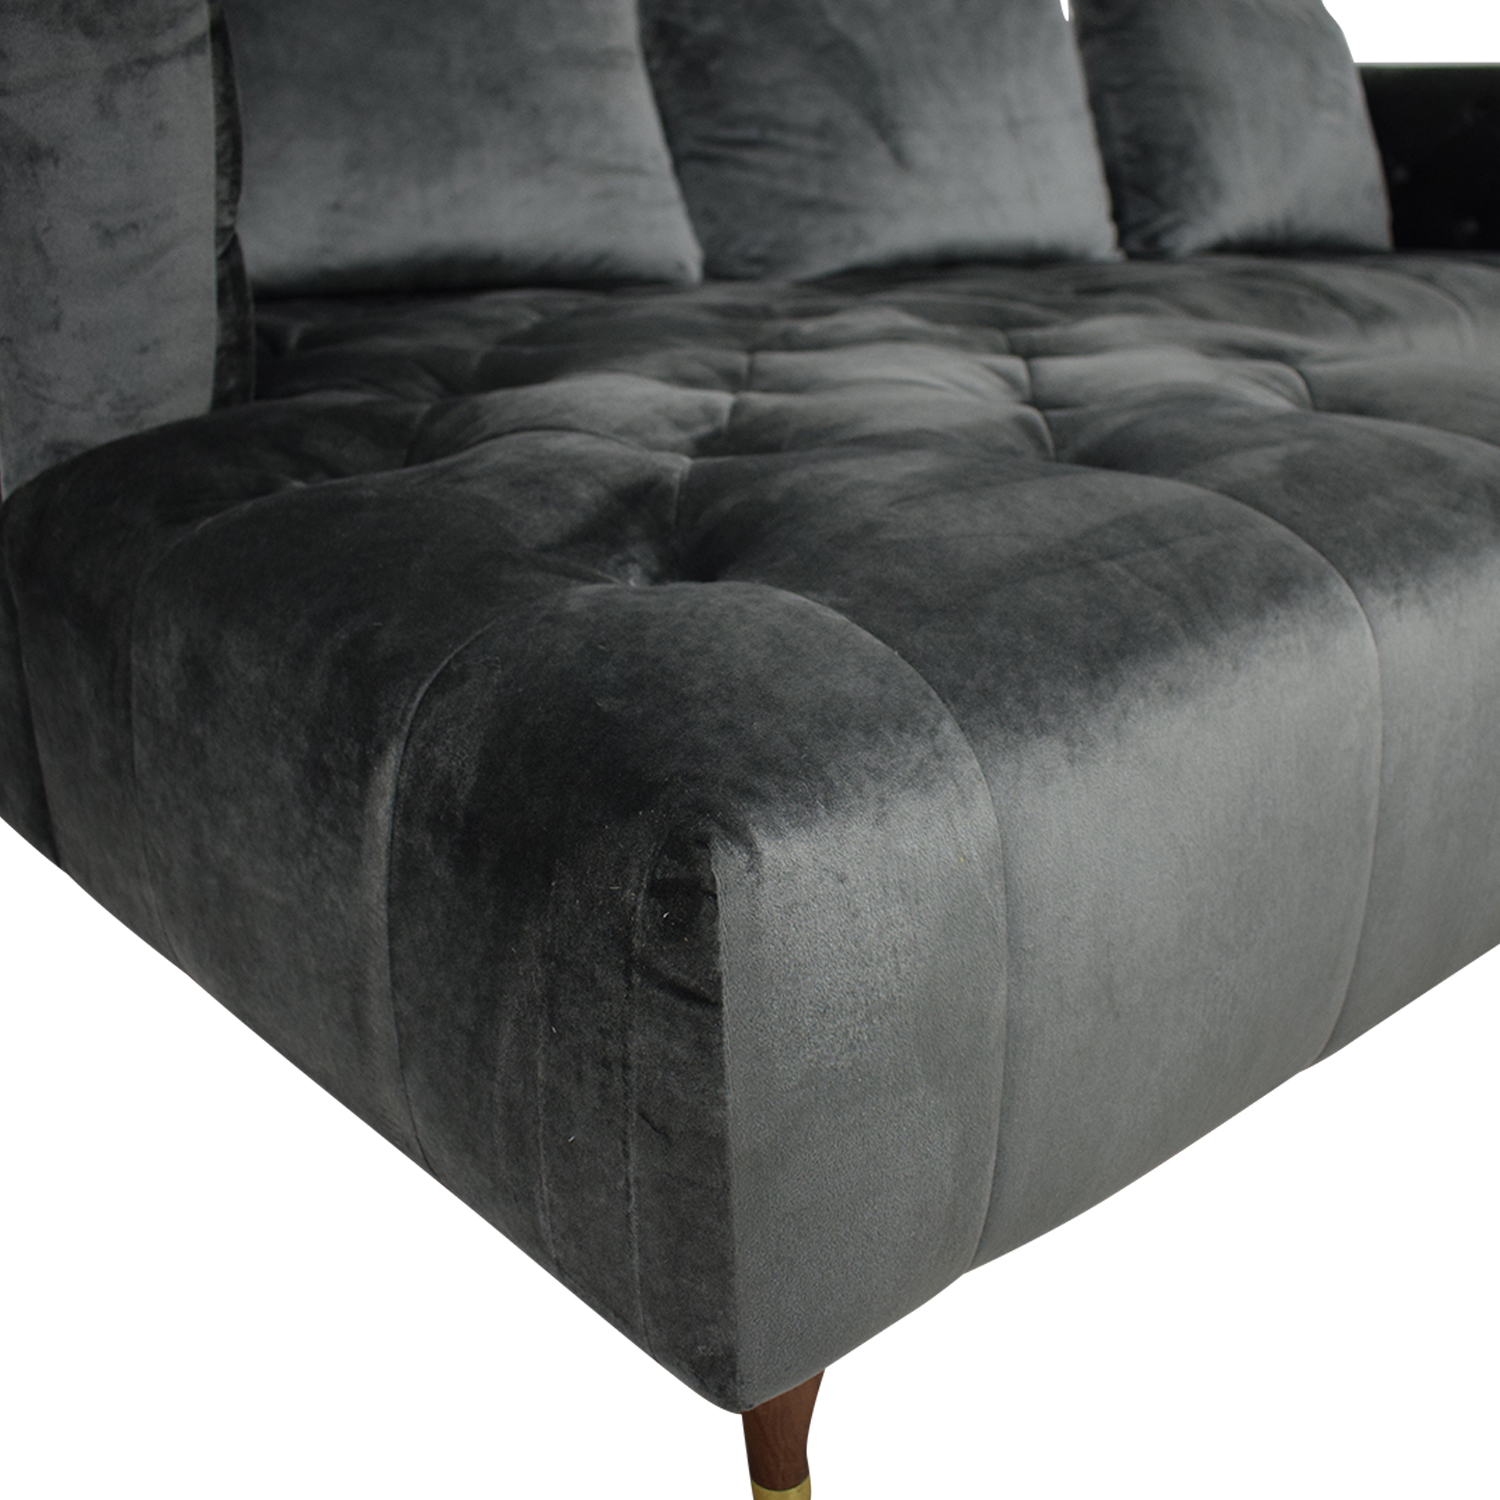 Interior Define Ms. Chesterfield Sectional Sofa with Left Chaise Sofas